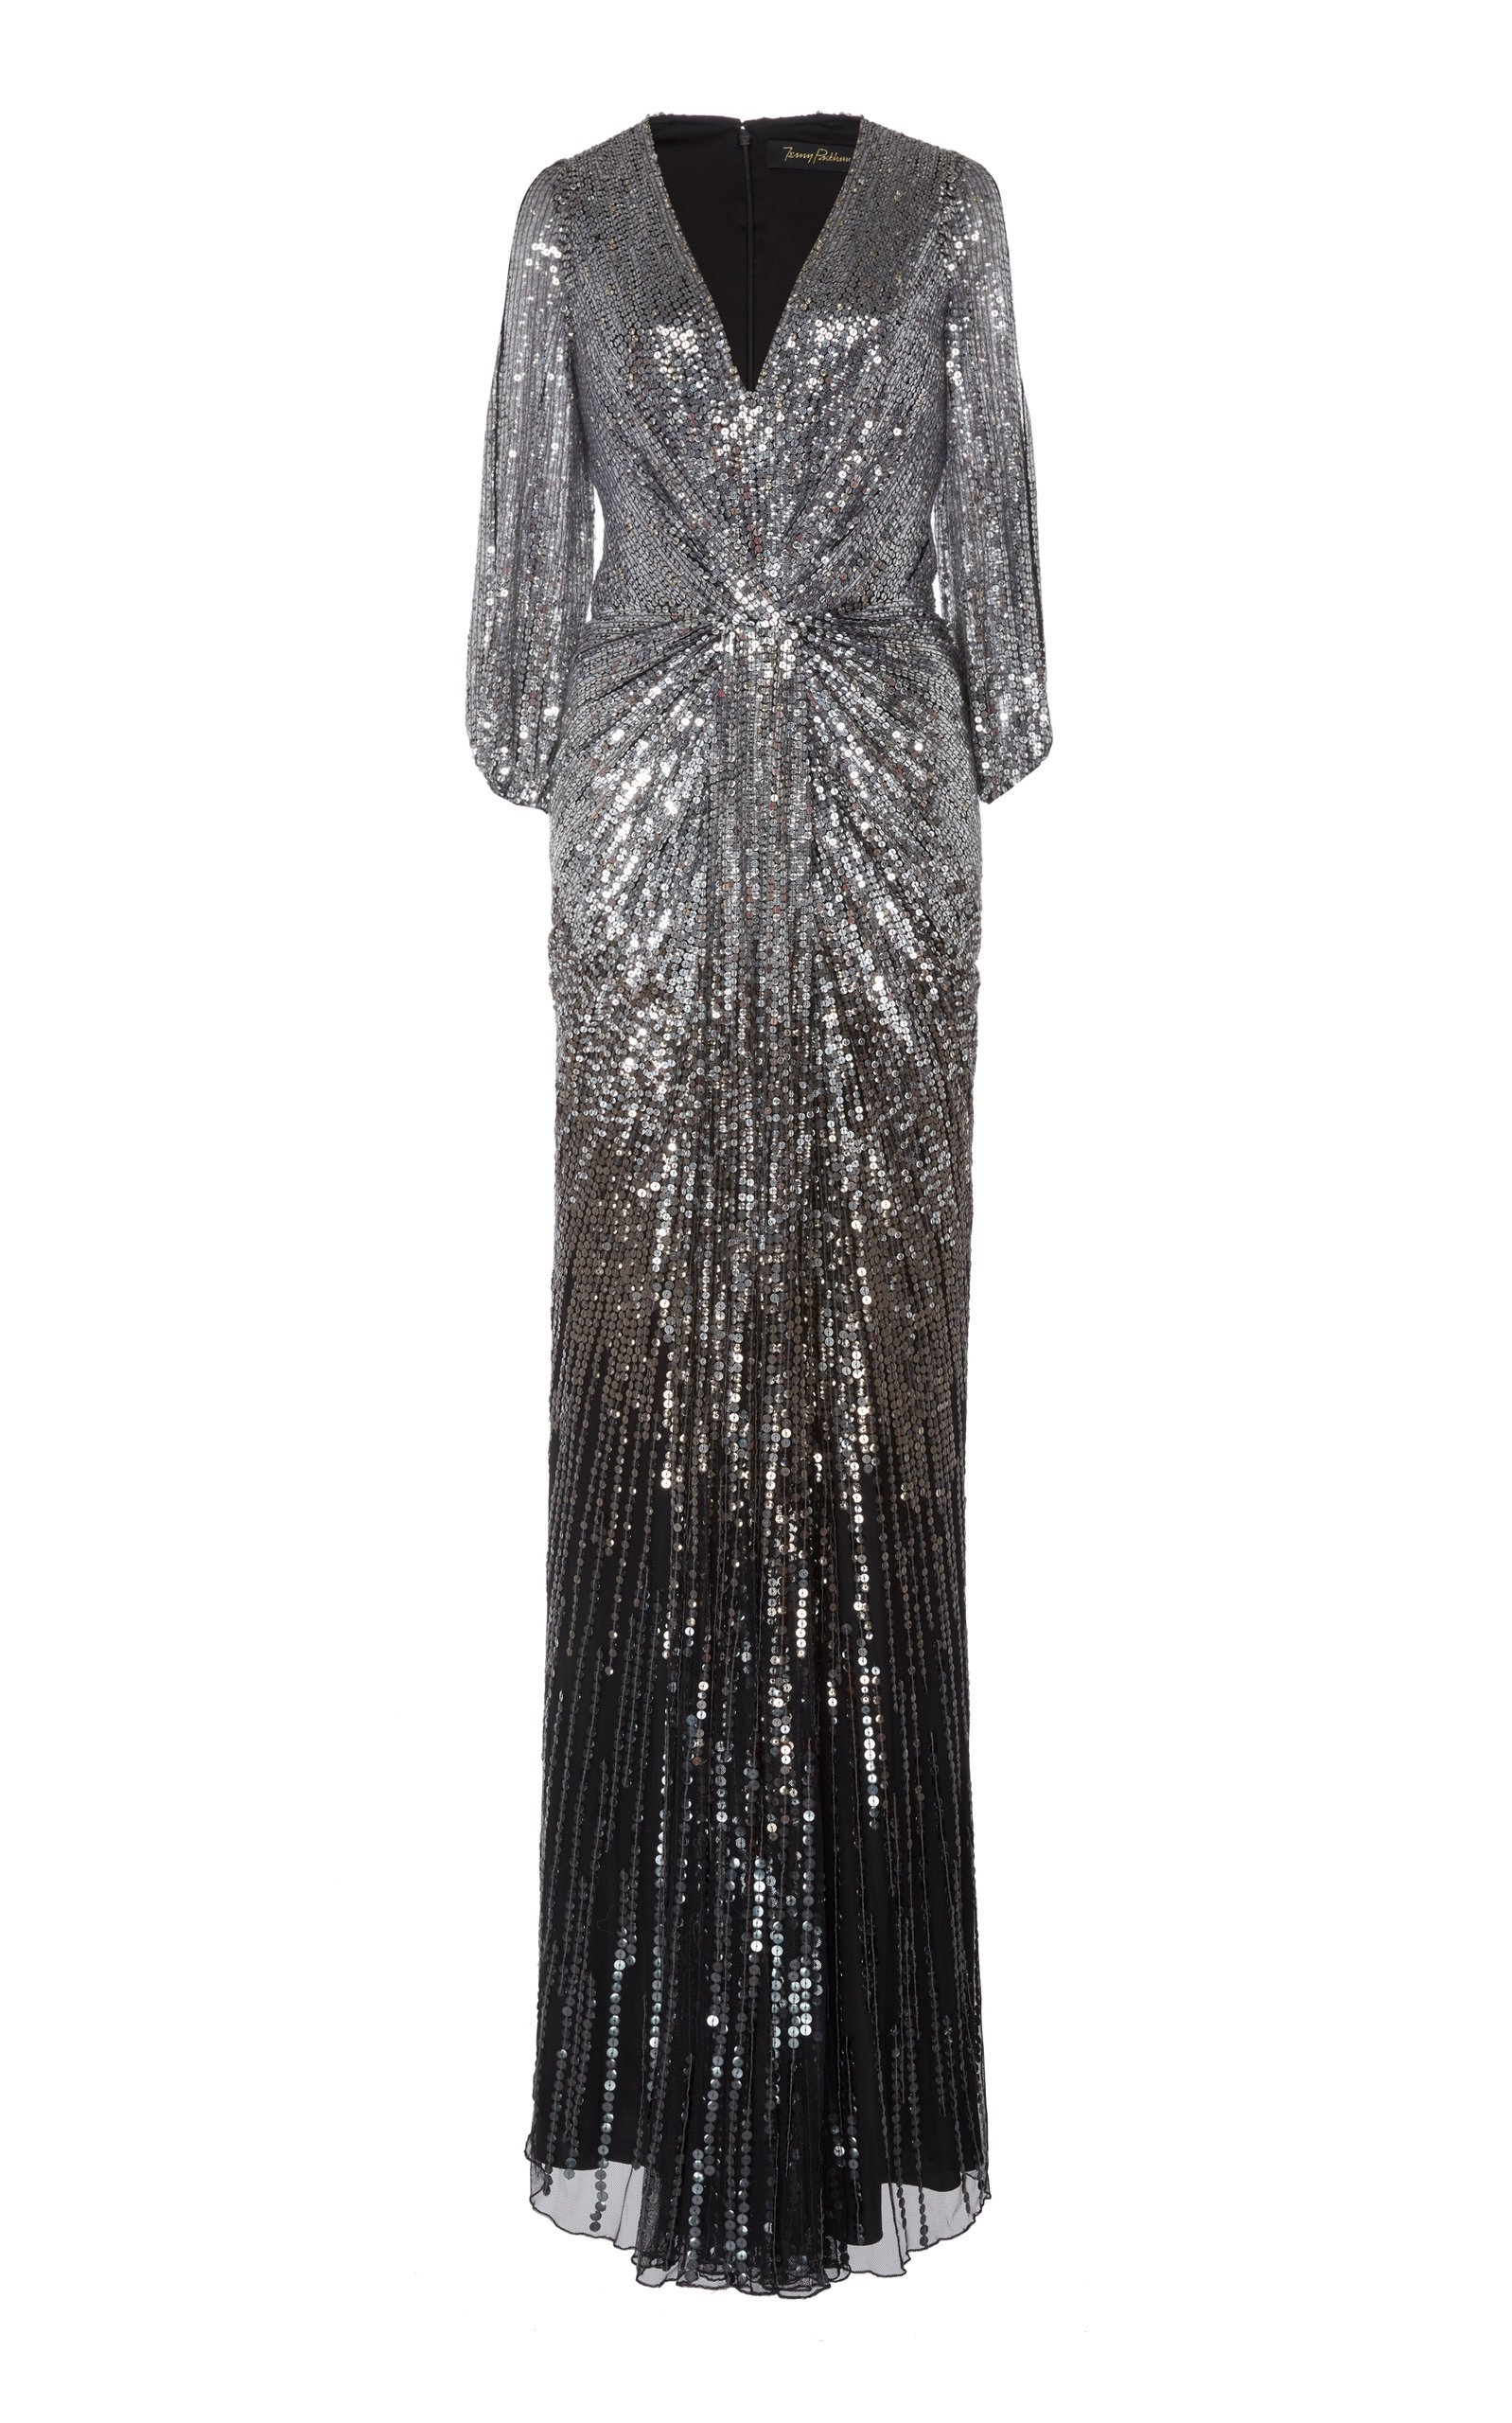 Jenny Packham Jacinta Sequined Tulle Gown